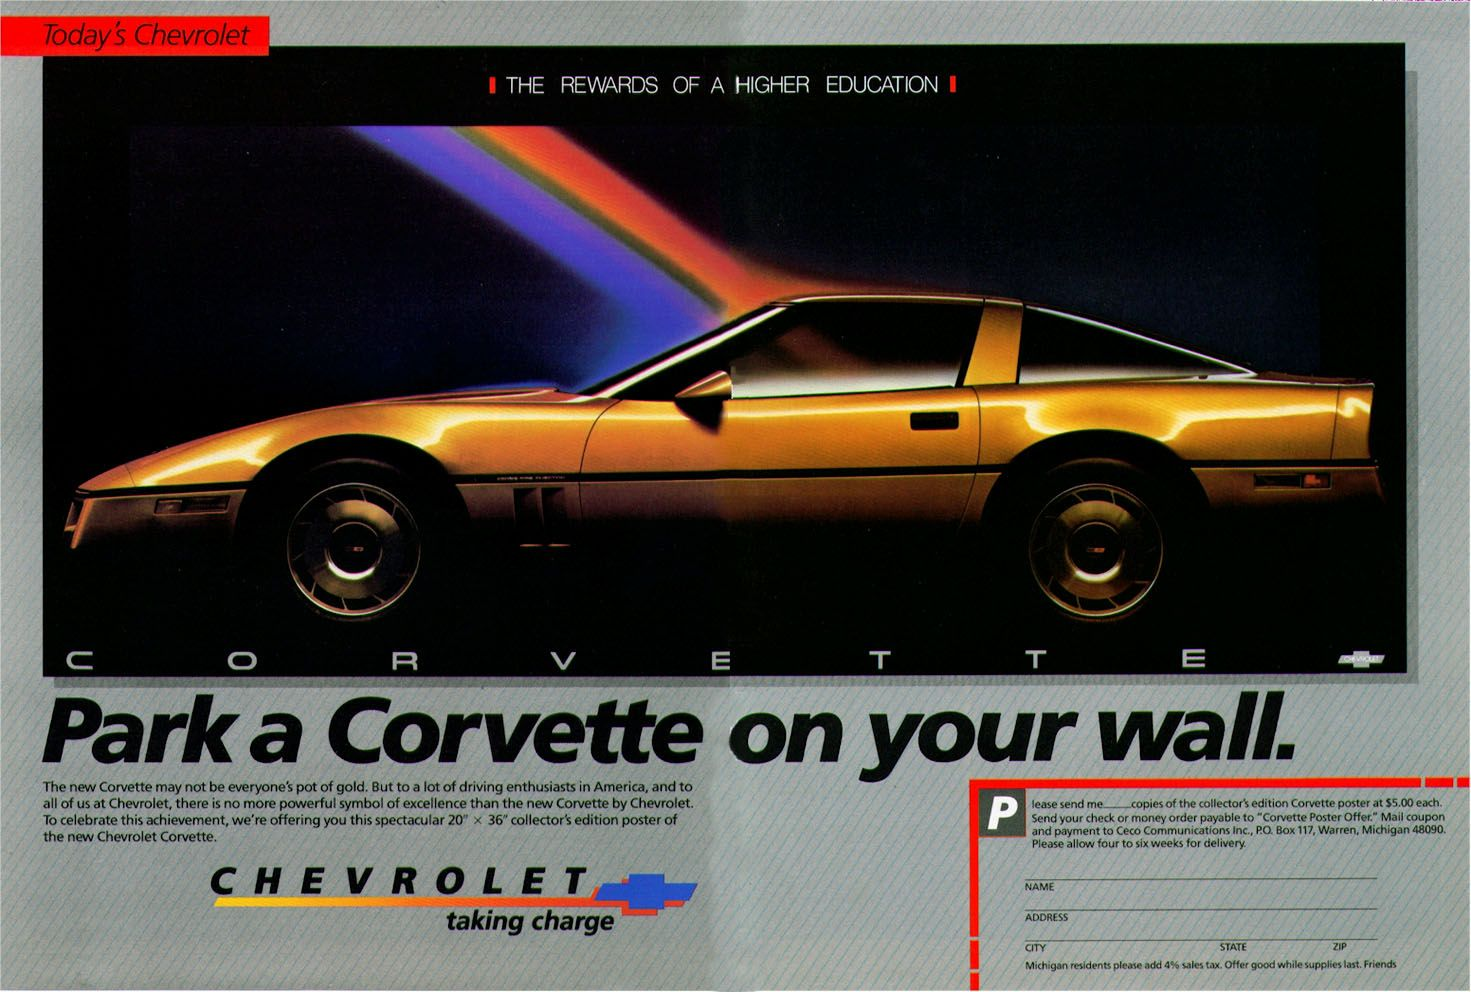 1984 Chevrolet Corvette Ad 06 Jpg 1 471 992 Pixels Preppy Car